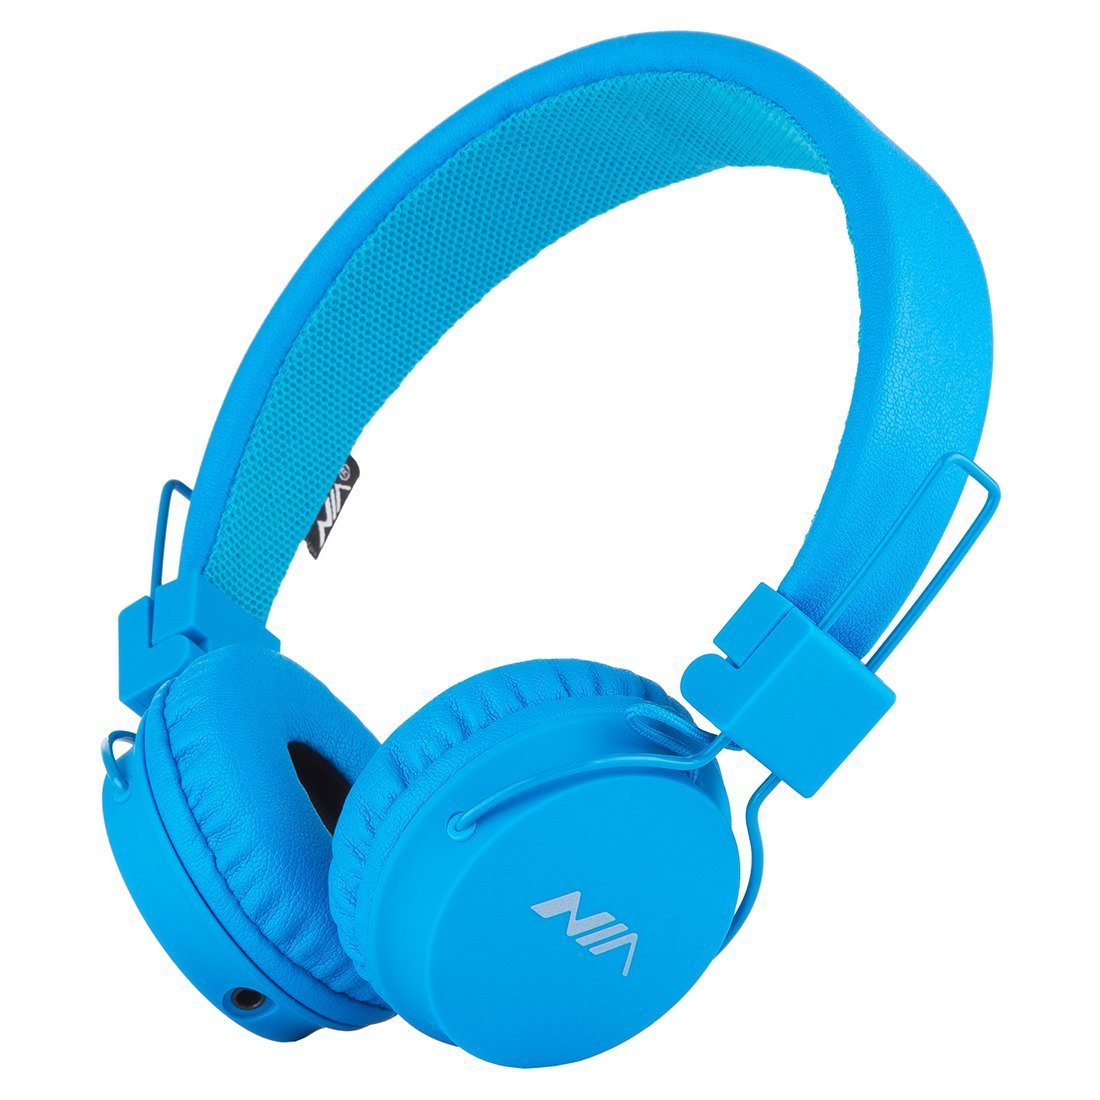 Wired Headphone for Kids SOLEMEMO Adjustable Over Ear Headphones Foldable Headsets with In-Line Control Detachable 3.5 Mm Audio Cable for Children Boys Girls Earphones for Smartphones PC Music Gaming Kids Headphones (Blue) B018K20SCY